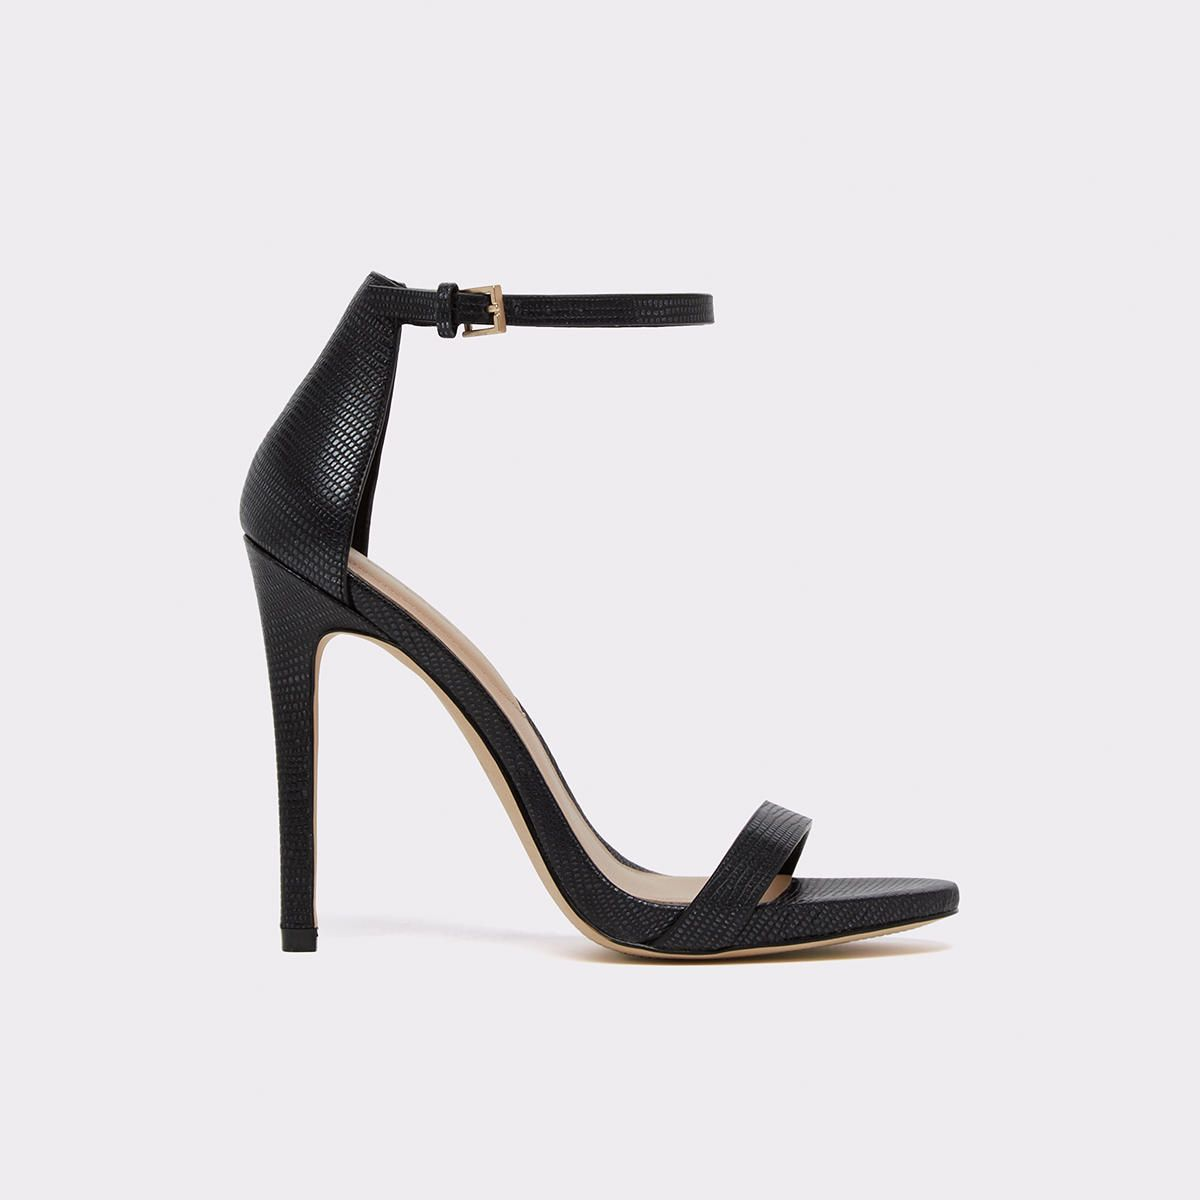 75cef45dc37a Caraa A timeless bare-all ankle-strap high heel sandal that stands the test